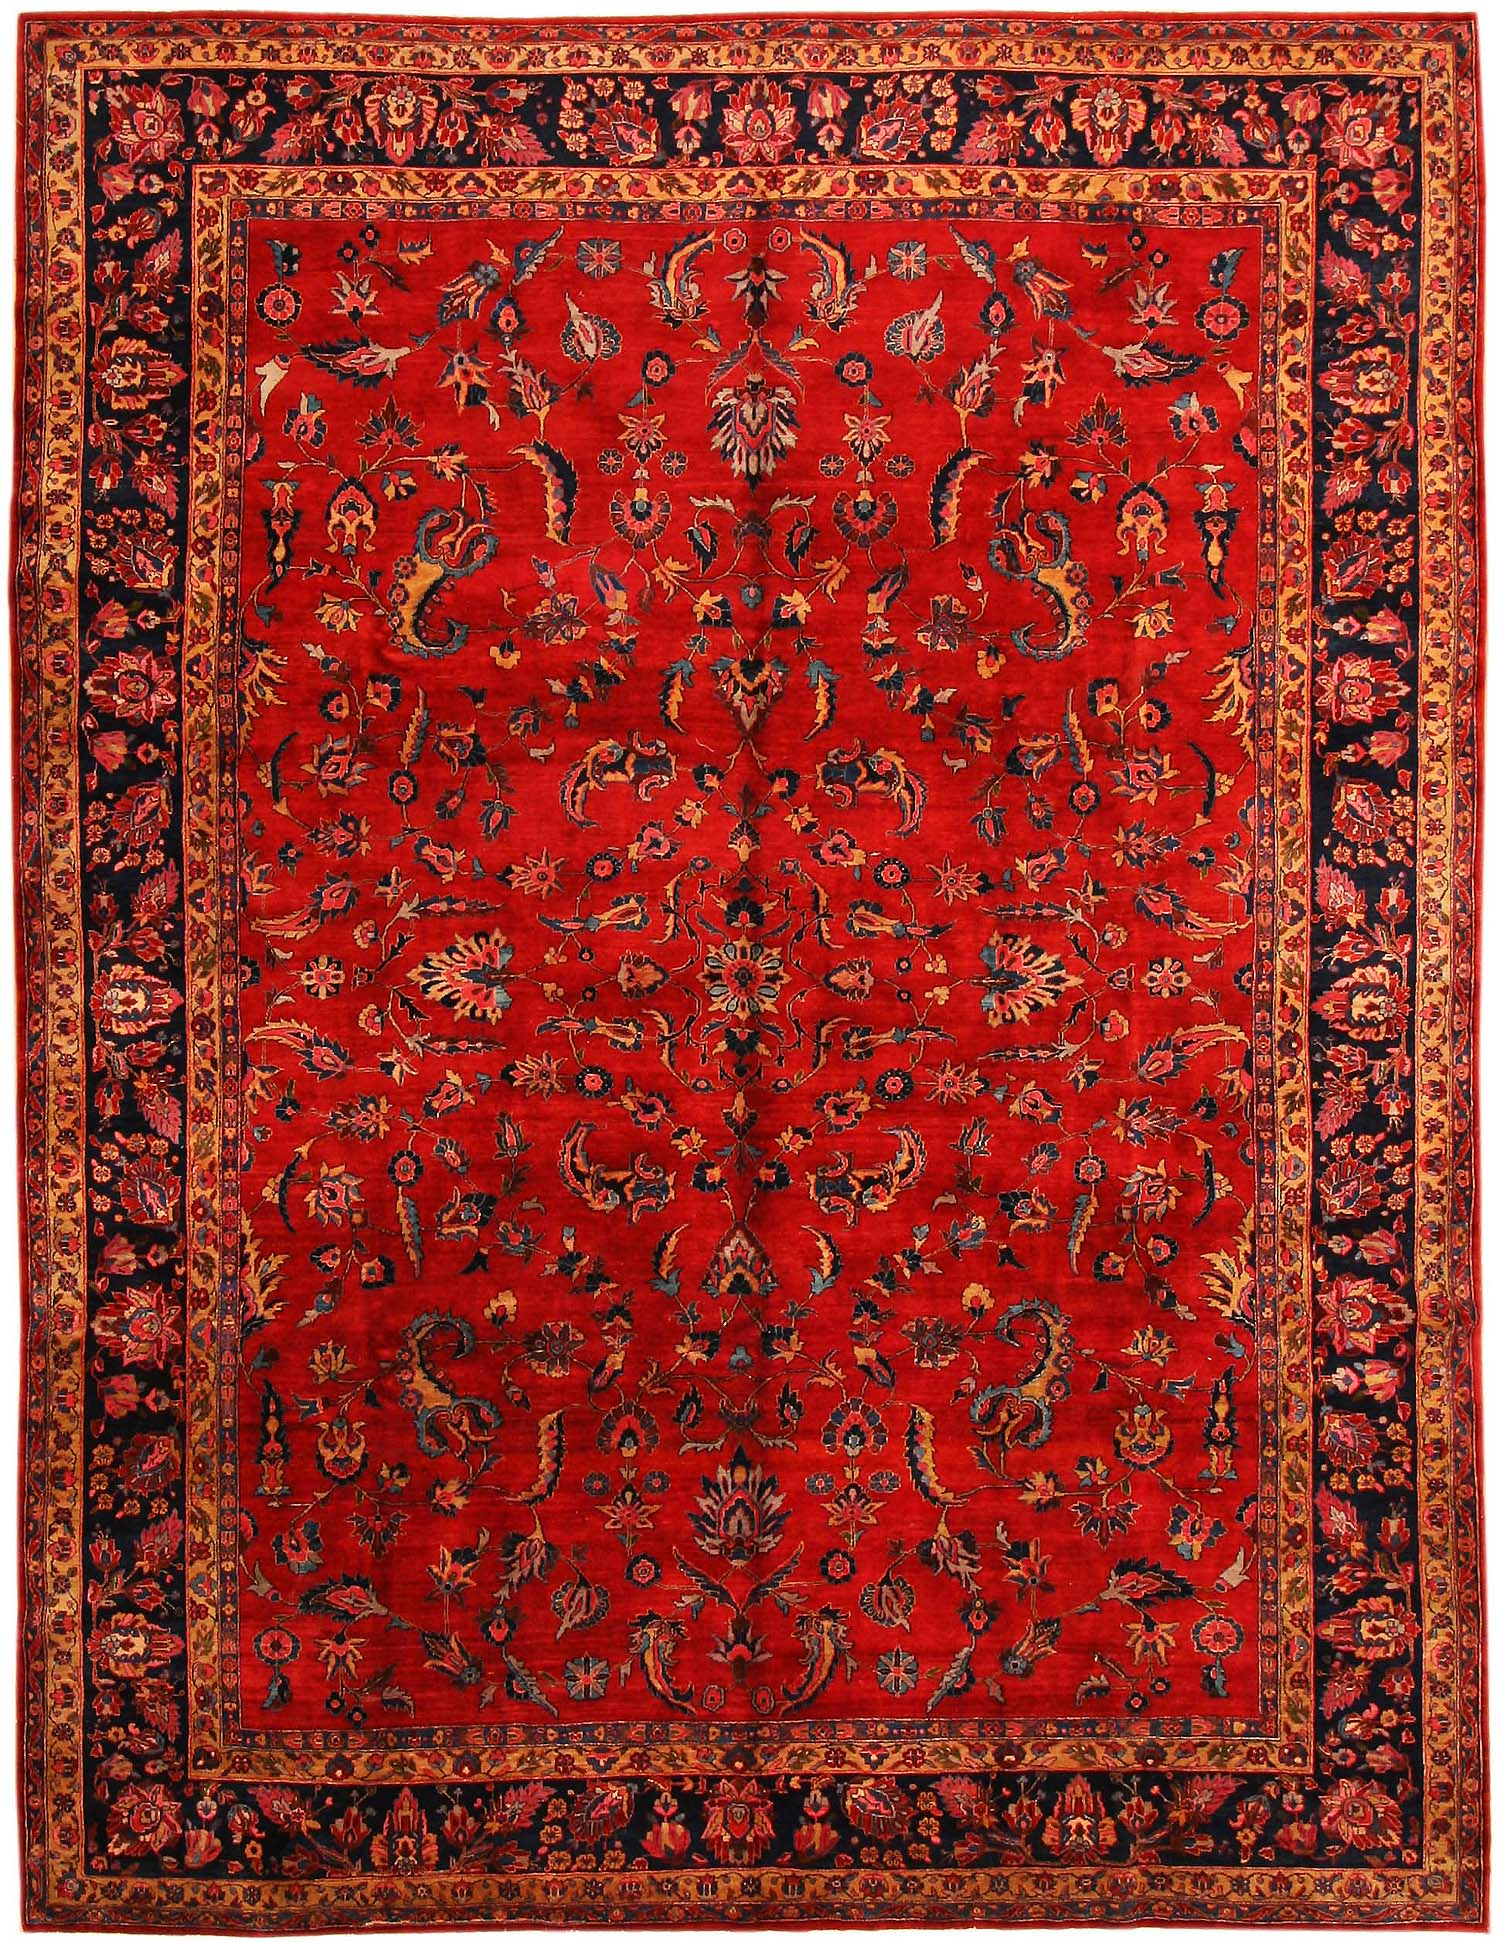 Red Oriental Rug Persian Rug Most Beautifull Art Of Craft